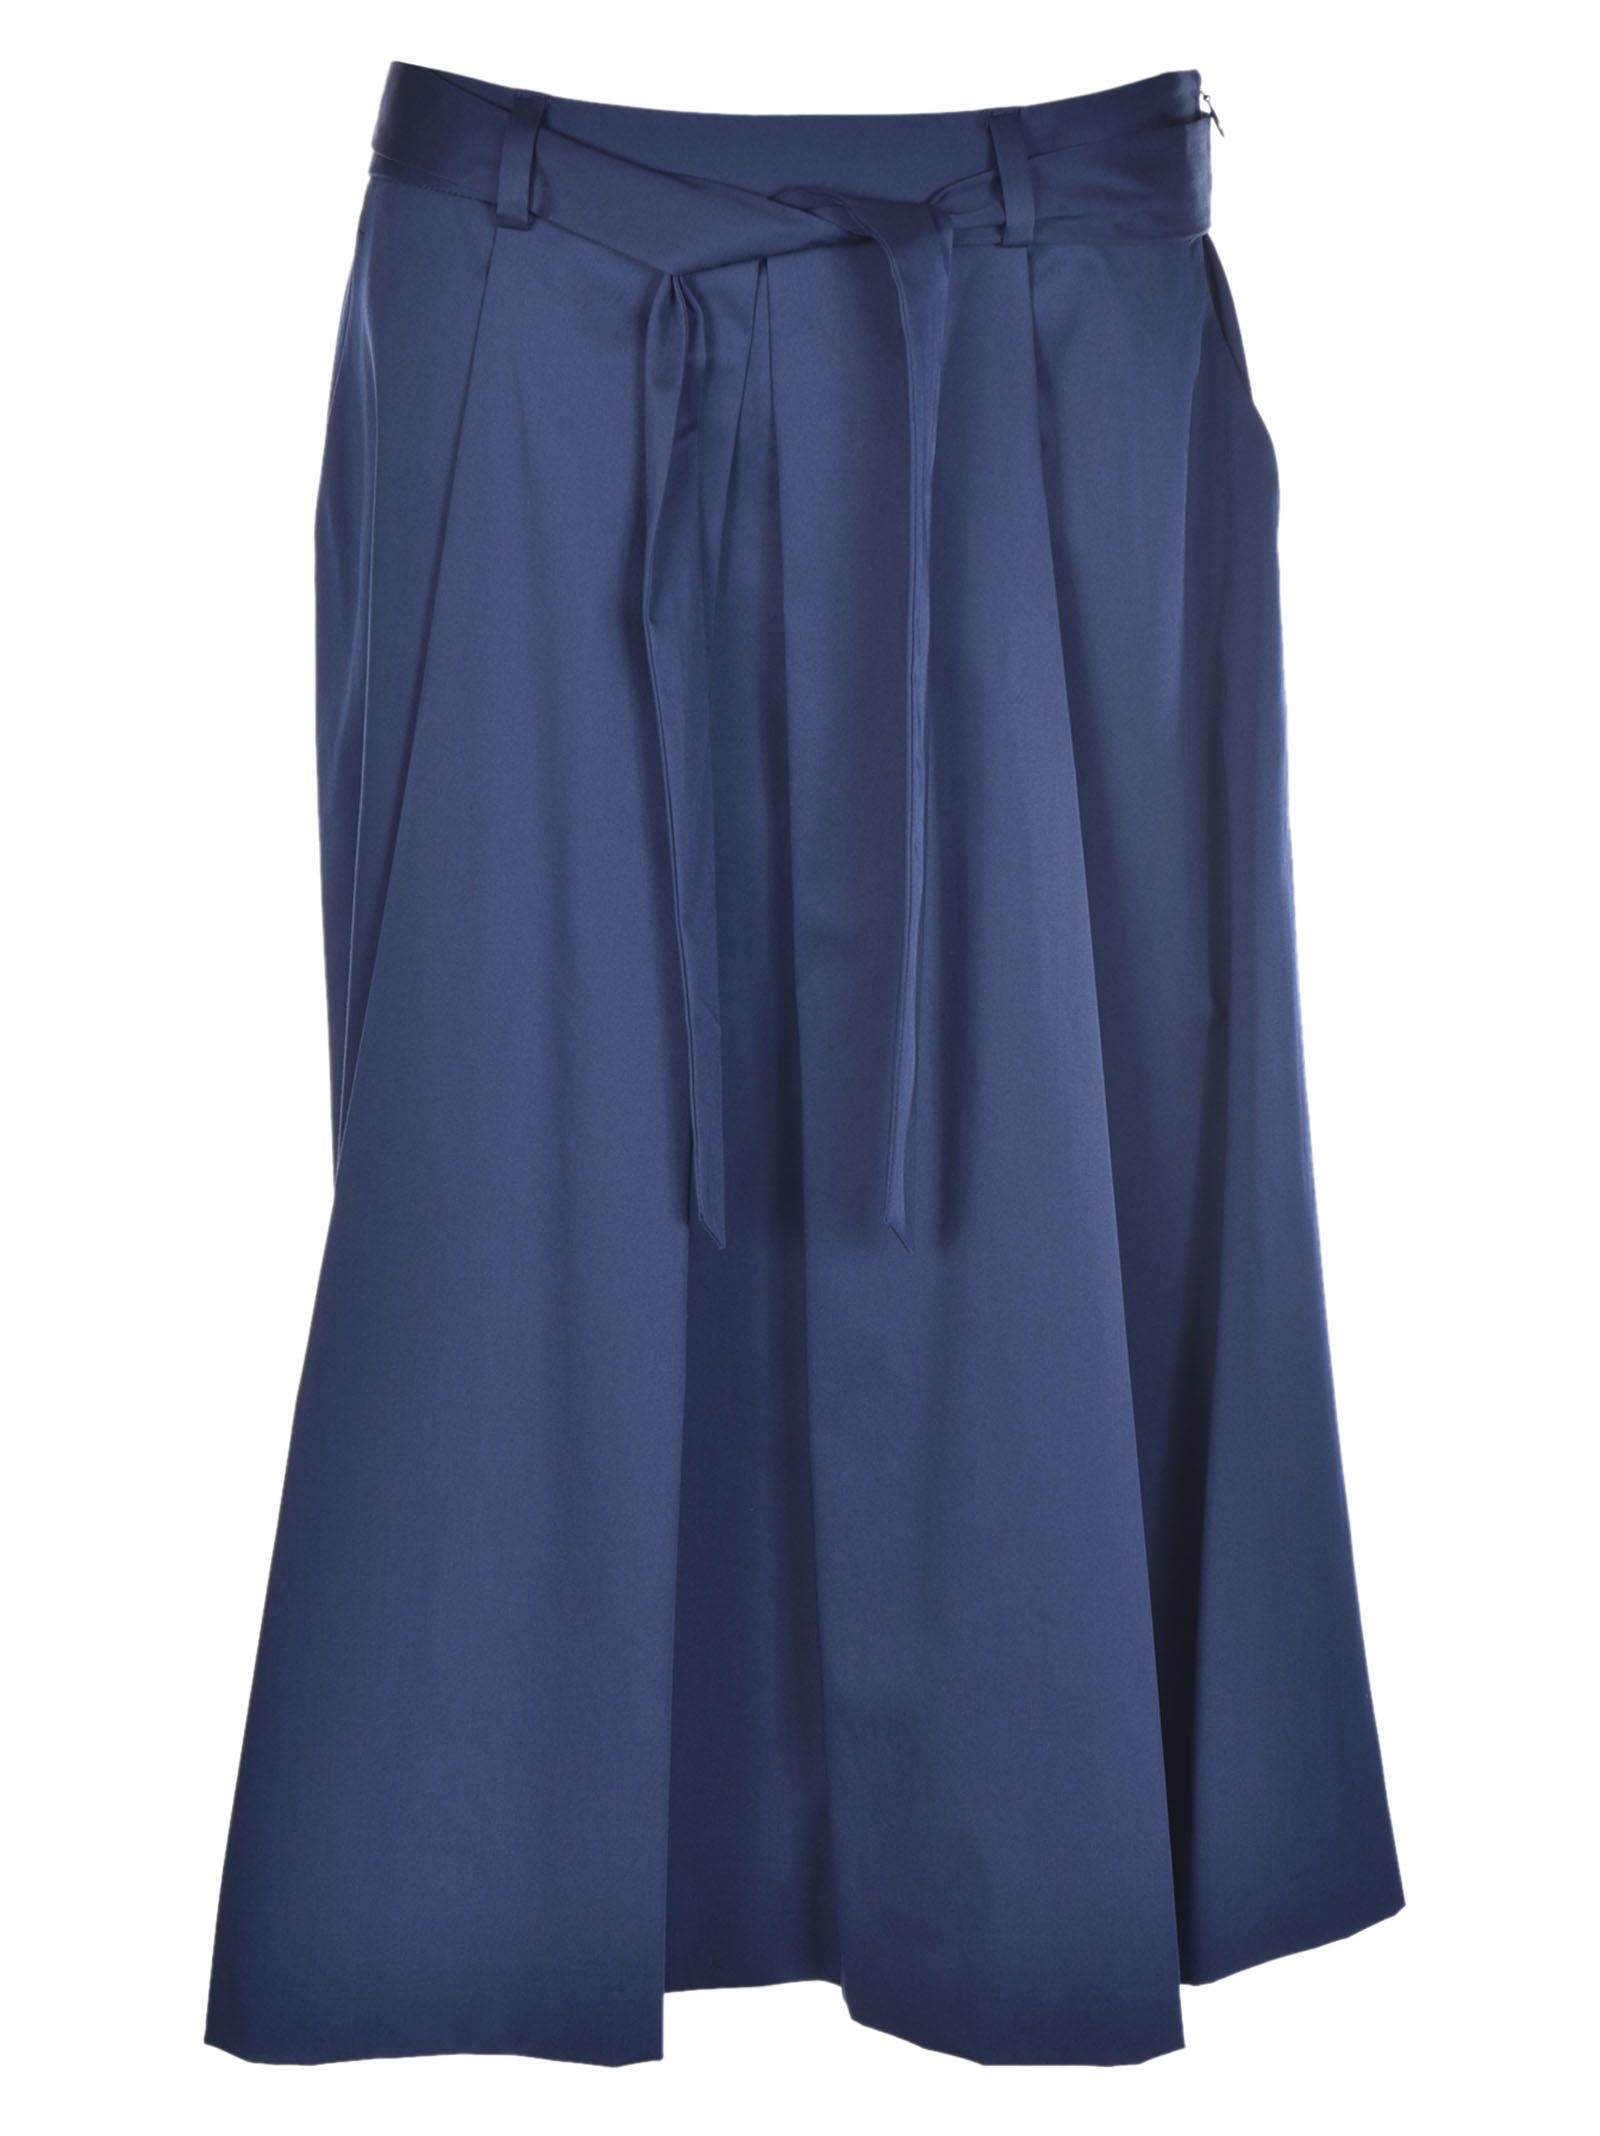 Boutique Moschino Pleated Belted Skirt